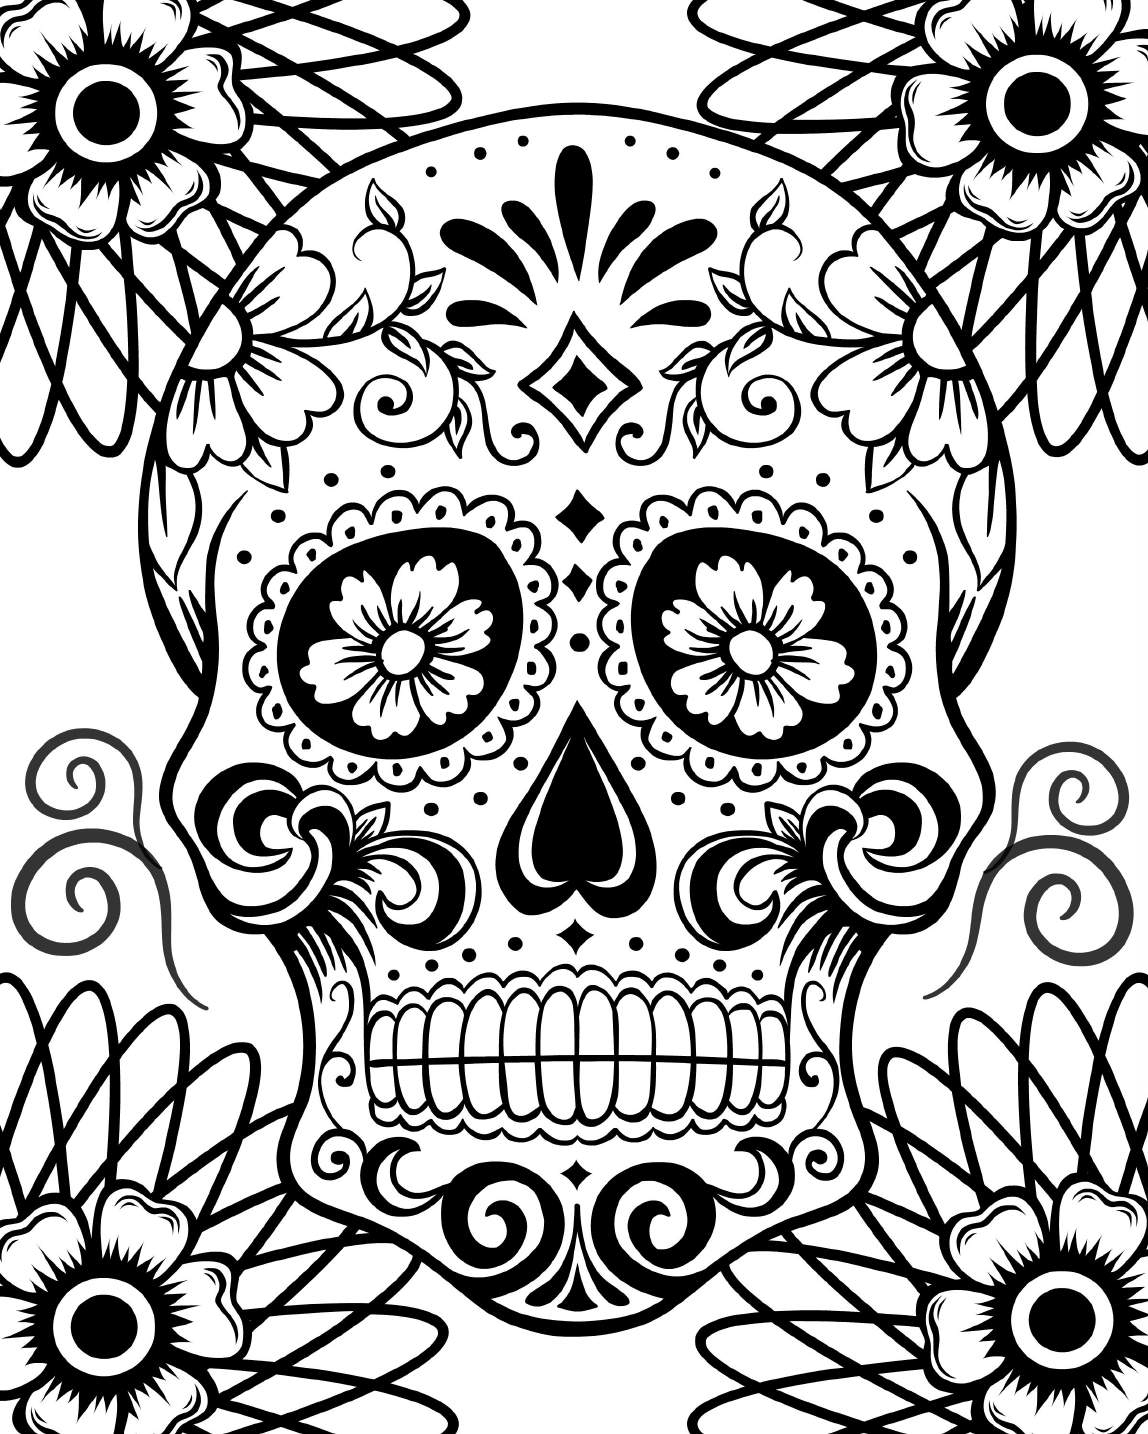 day of the dead pictures to color free printable day of the dead coloring pages best of color day the dead to pictures